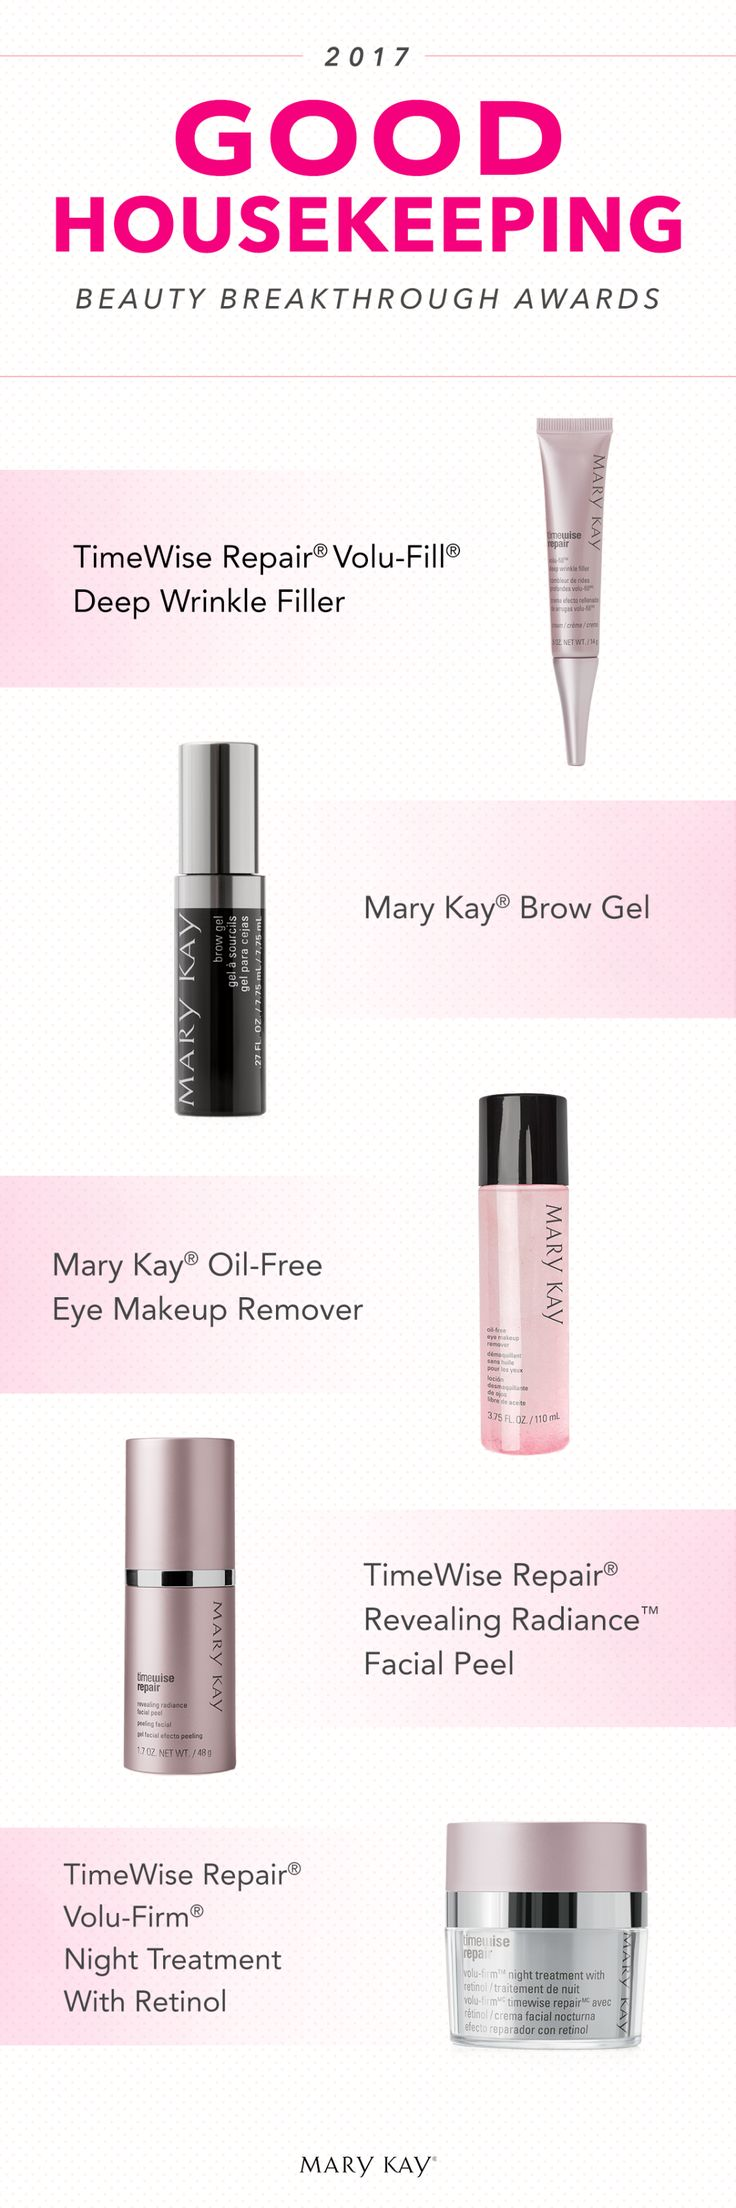 We're tickled pink to be honored by Good Housekeeping! From our gentle eye makeup remover to treatments tough on aging, these products have been named the best in beauty. Click to learn more!   Mary Kay